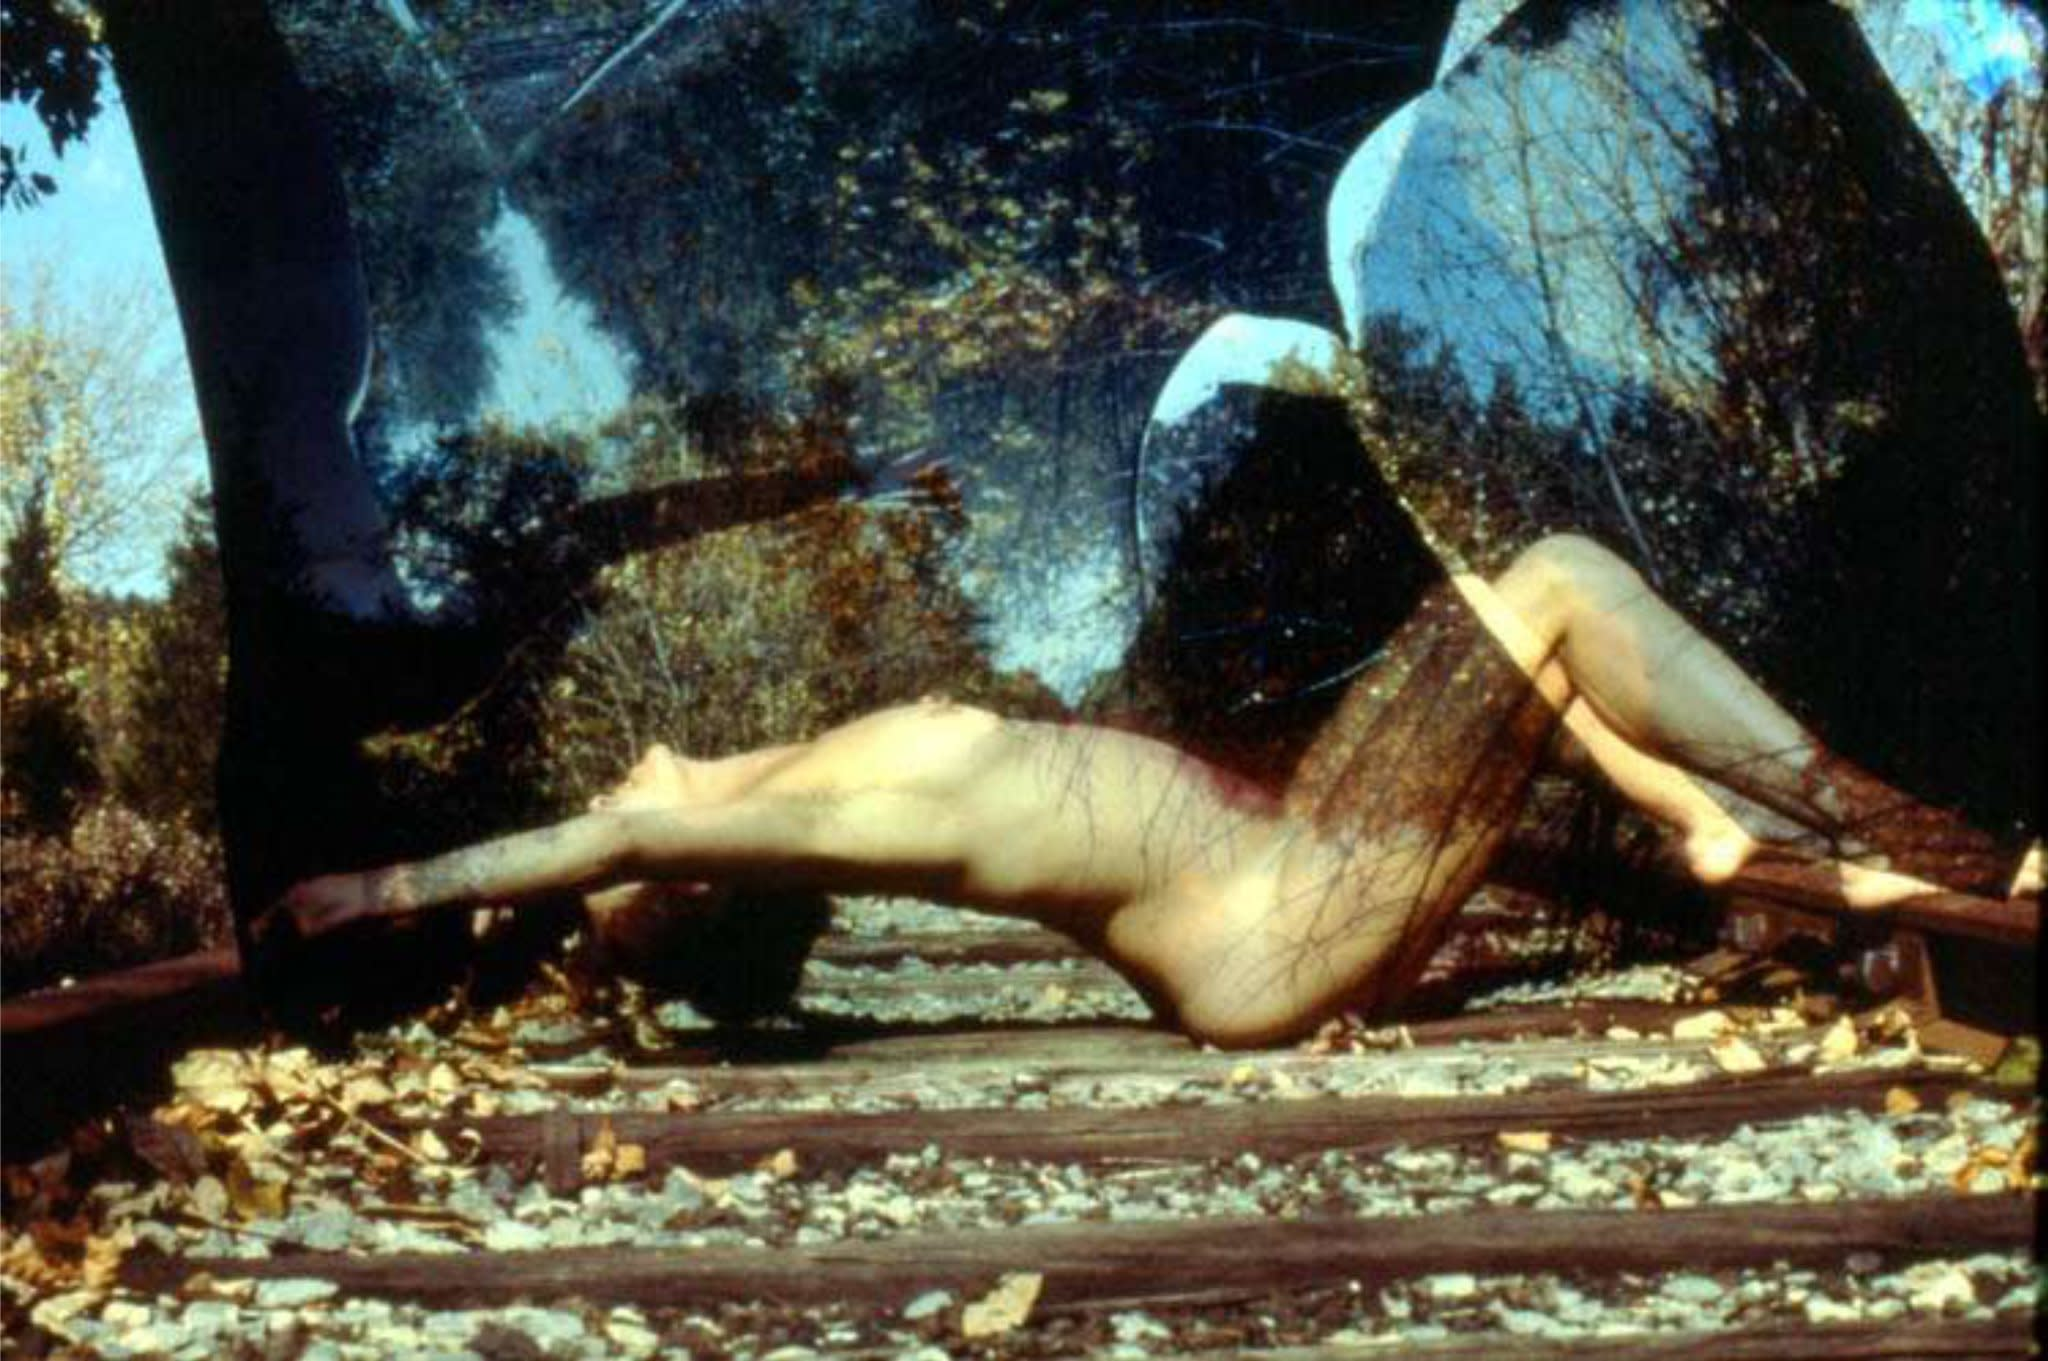 Nude on Tracks (A), 1975/2005